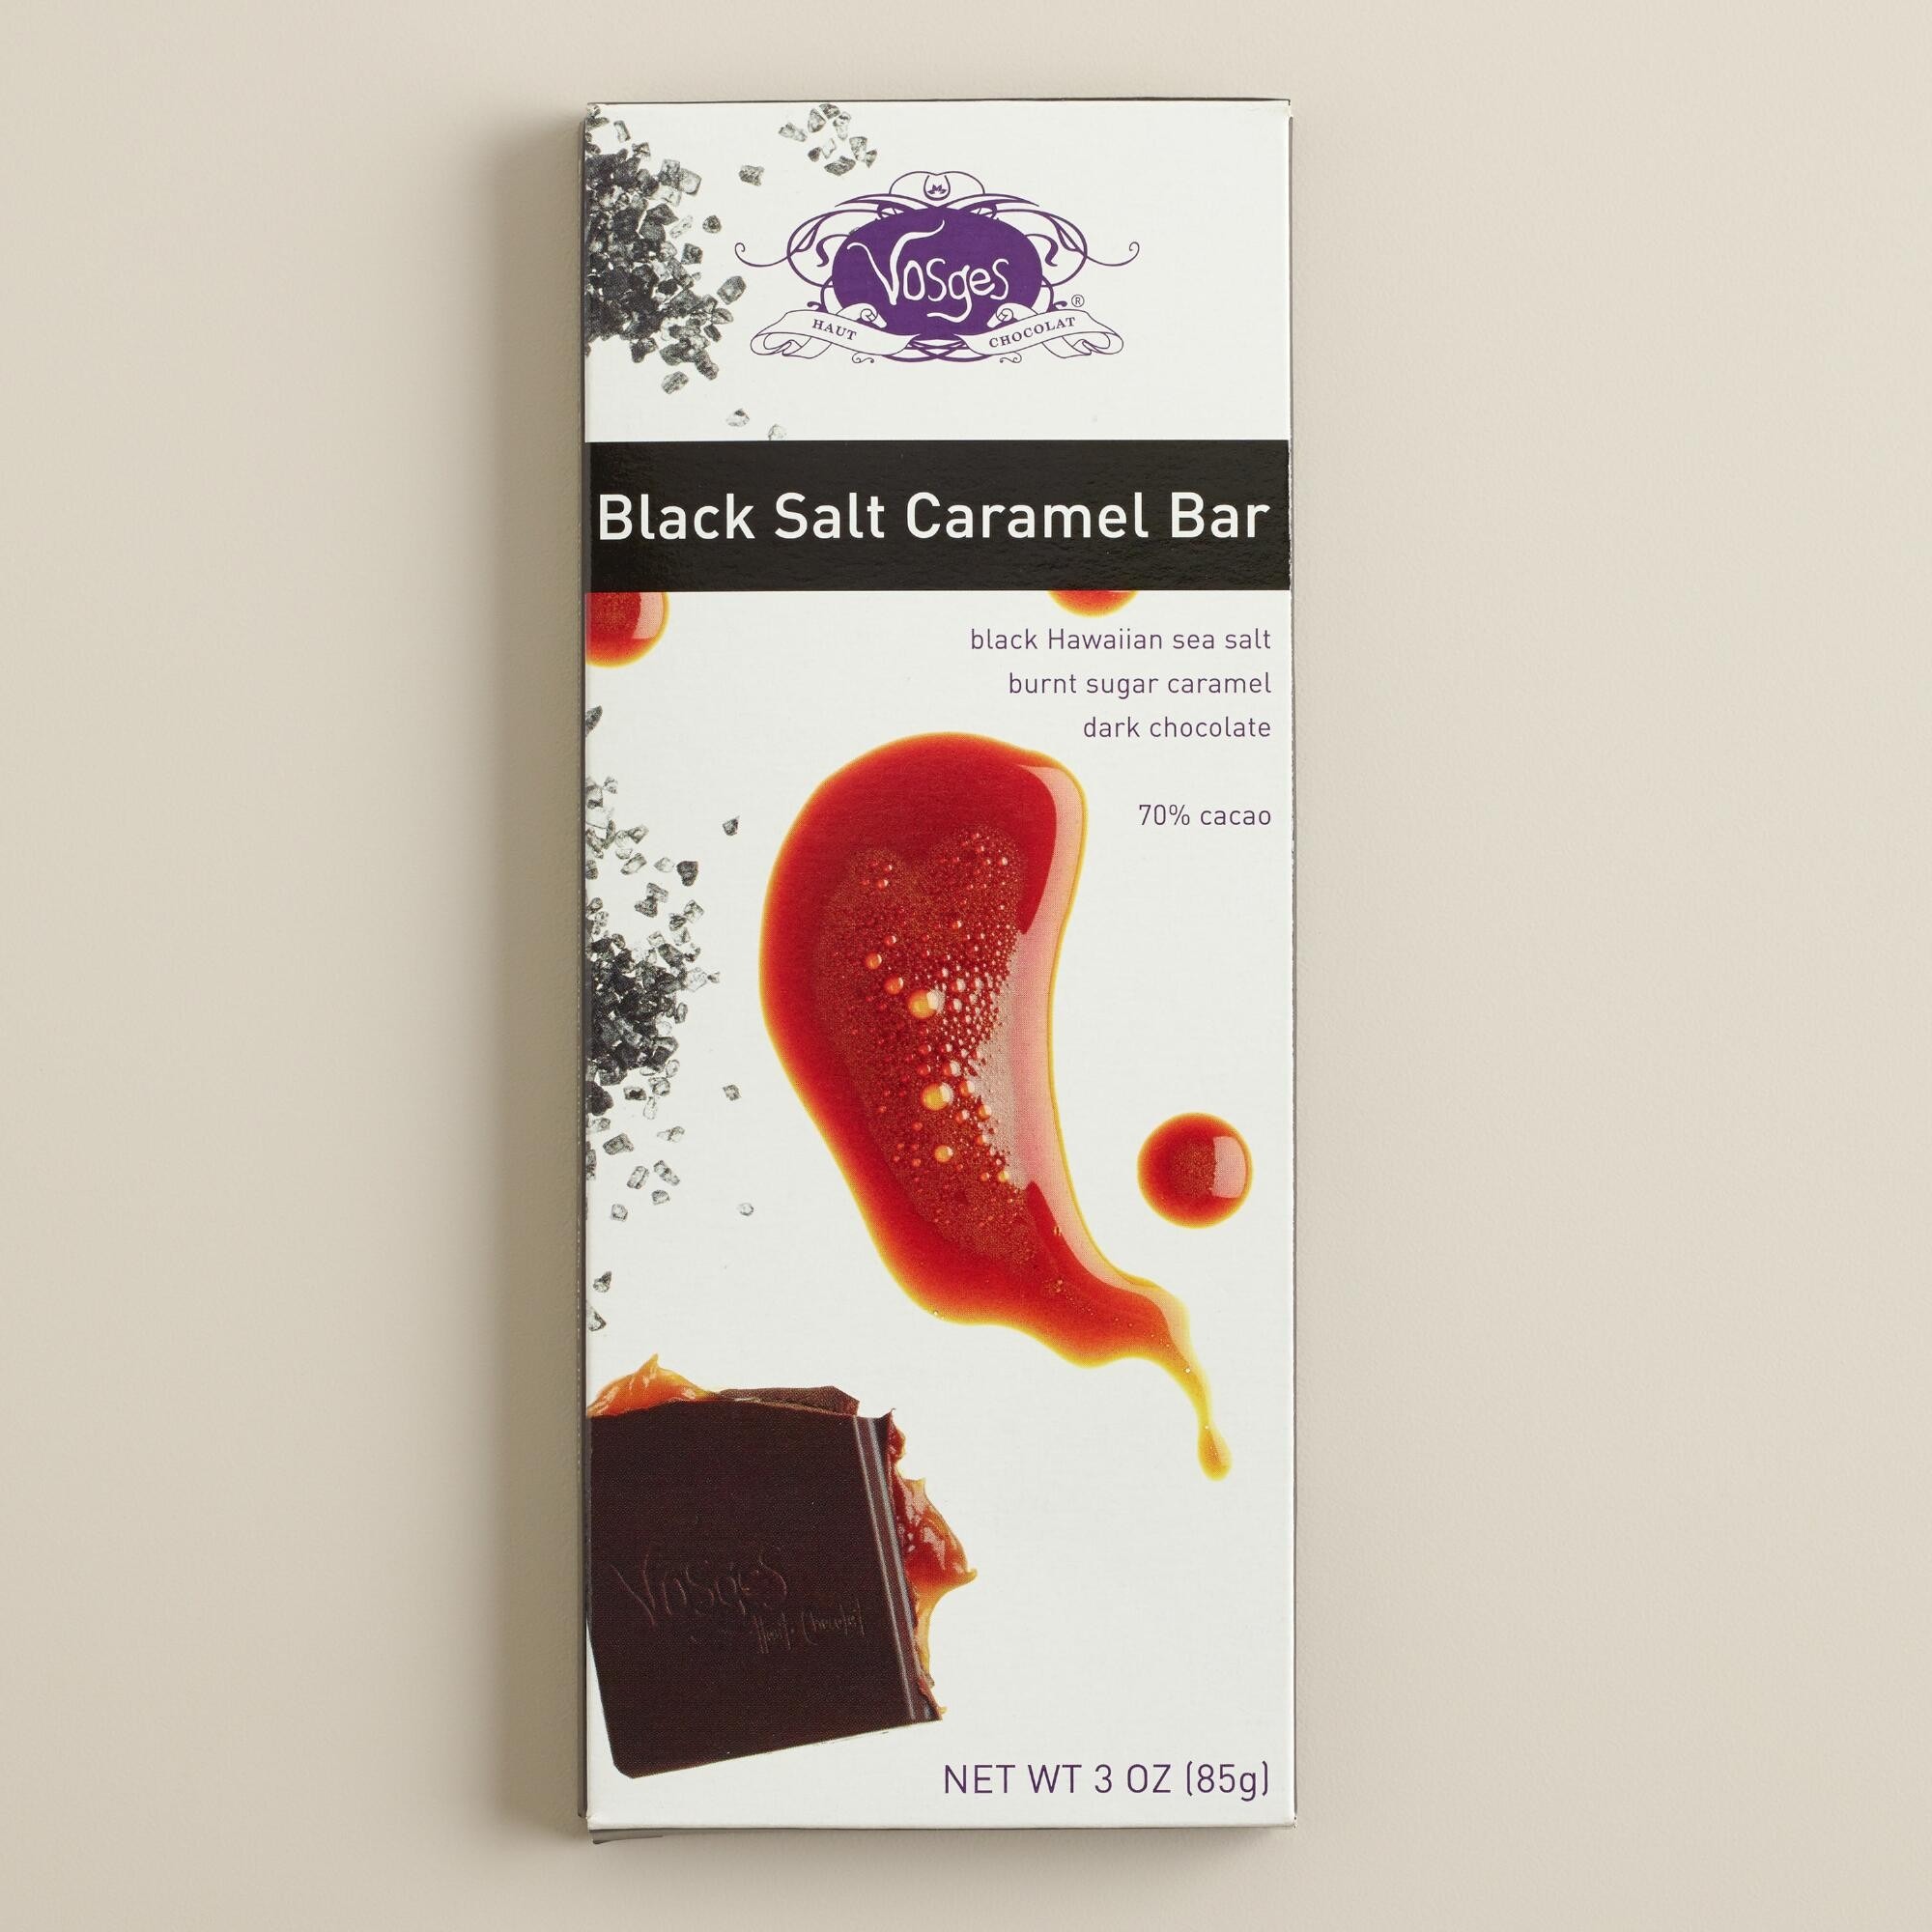 Vosges dark chocolate bar